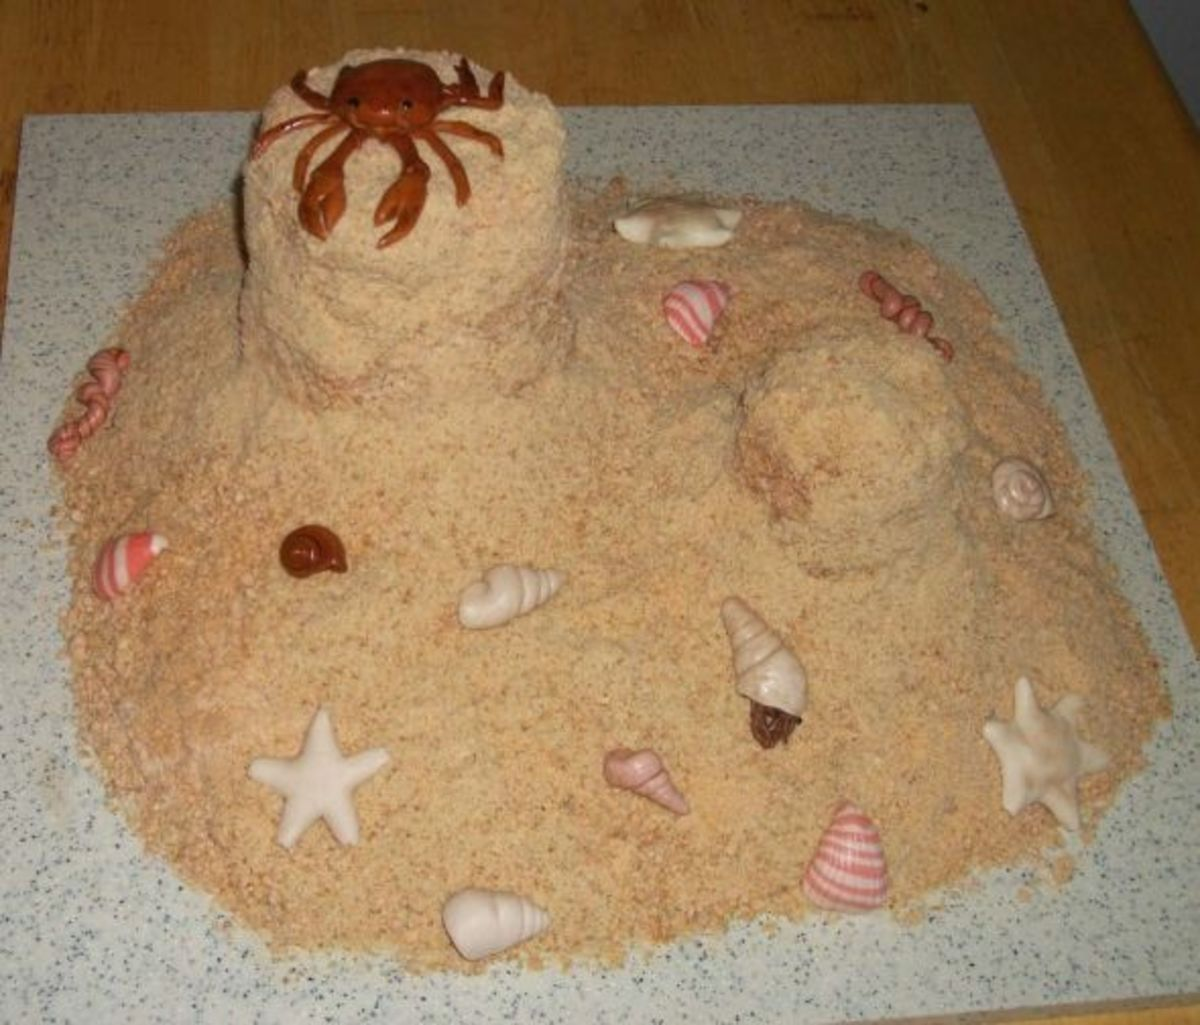 Sandcastle beach cake with hermit crabs, starfish, and seashells